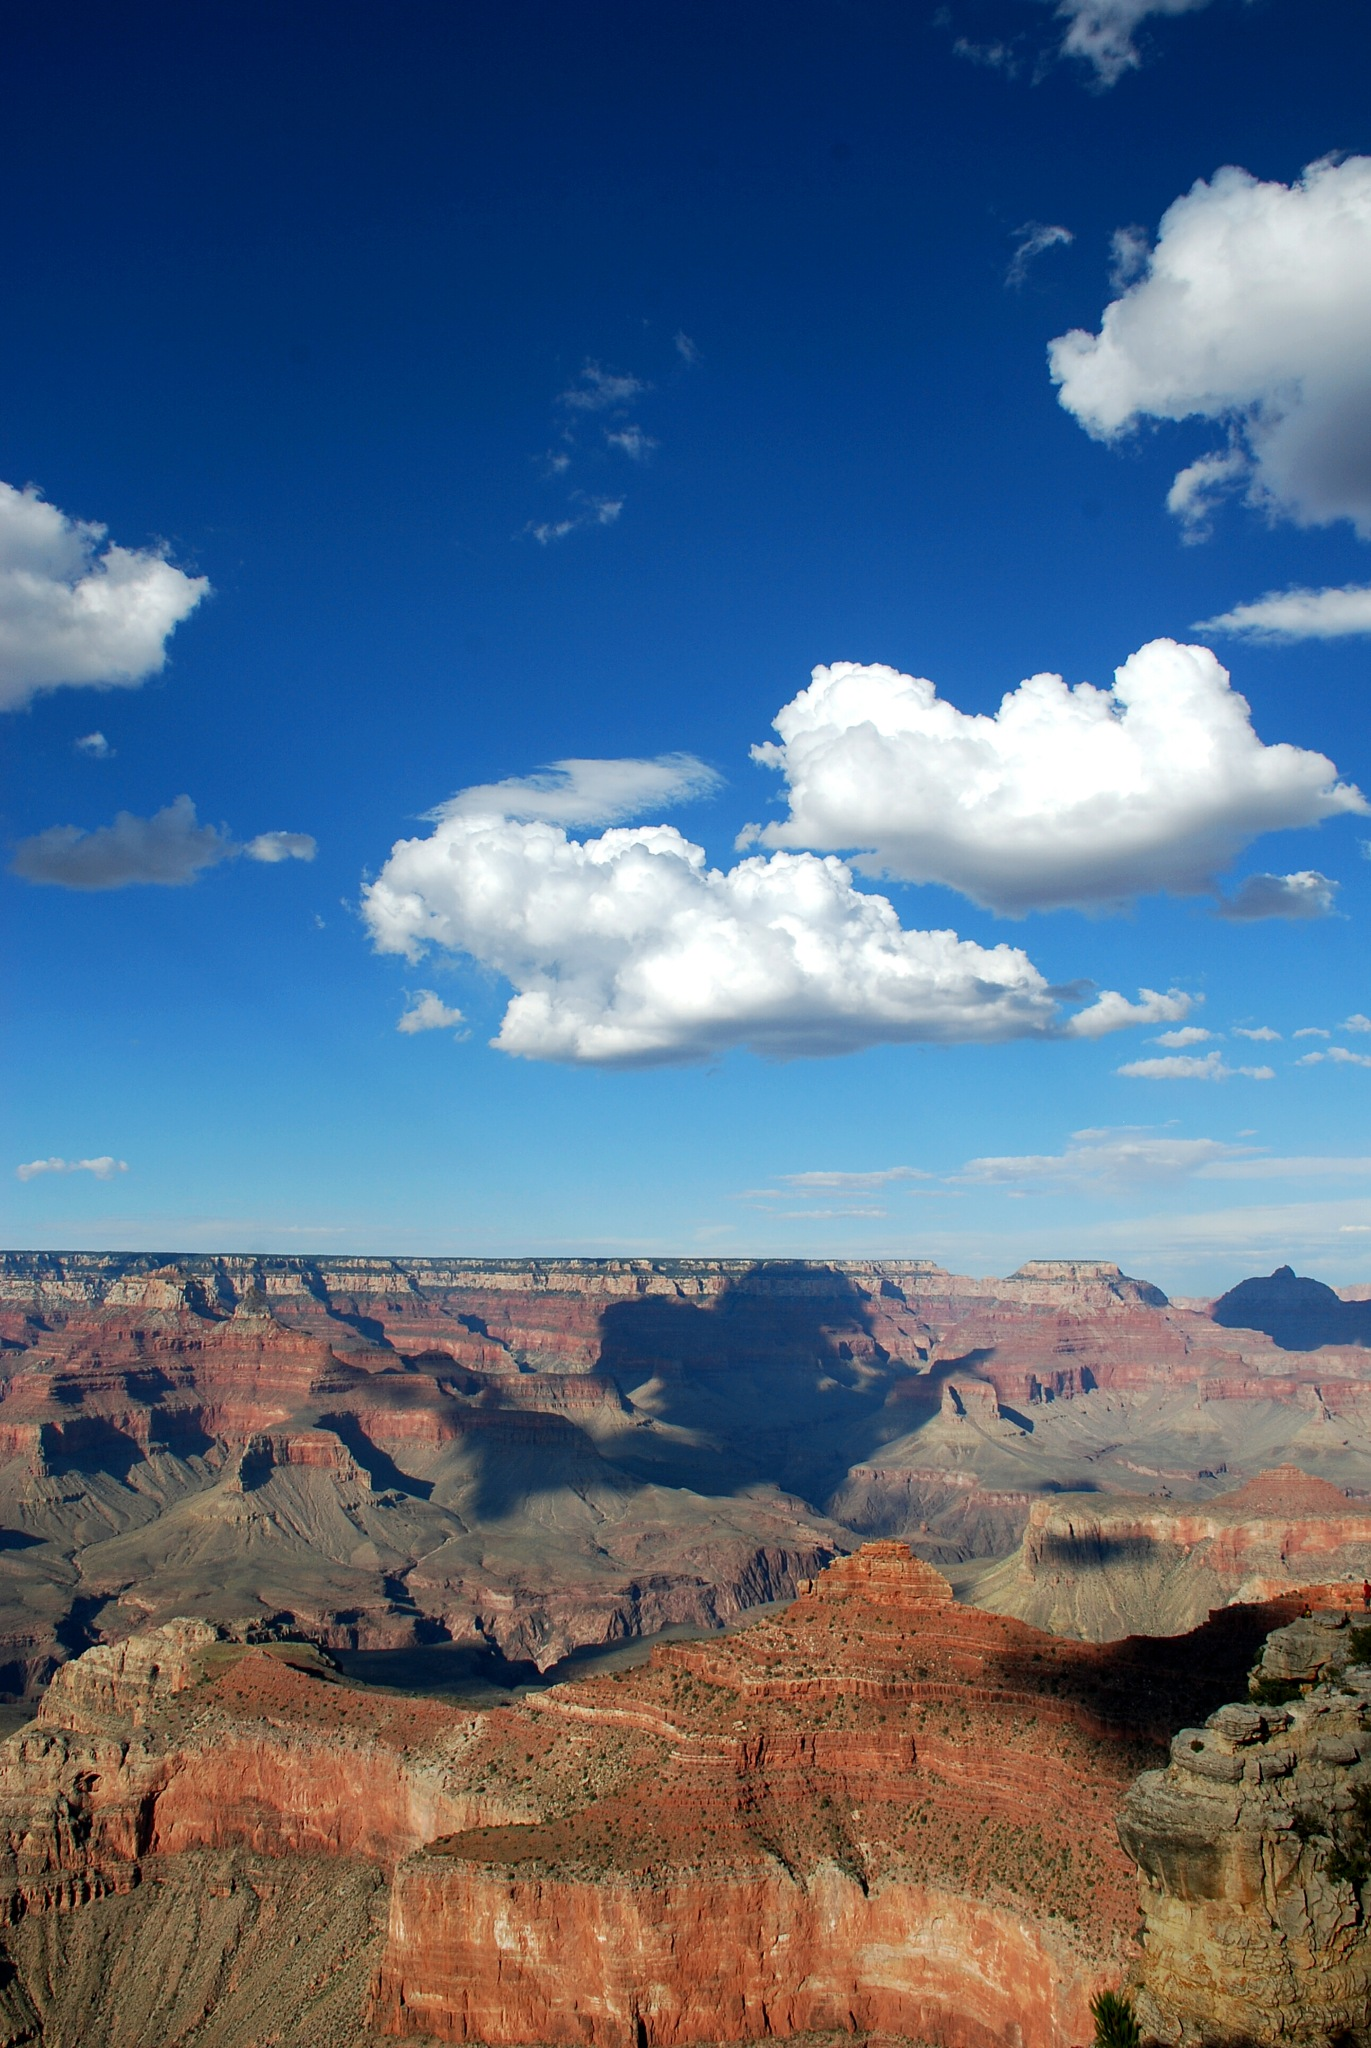 Clouds above te Grand Canyon by Christel Mantel